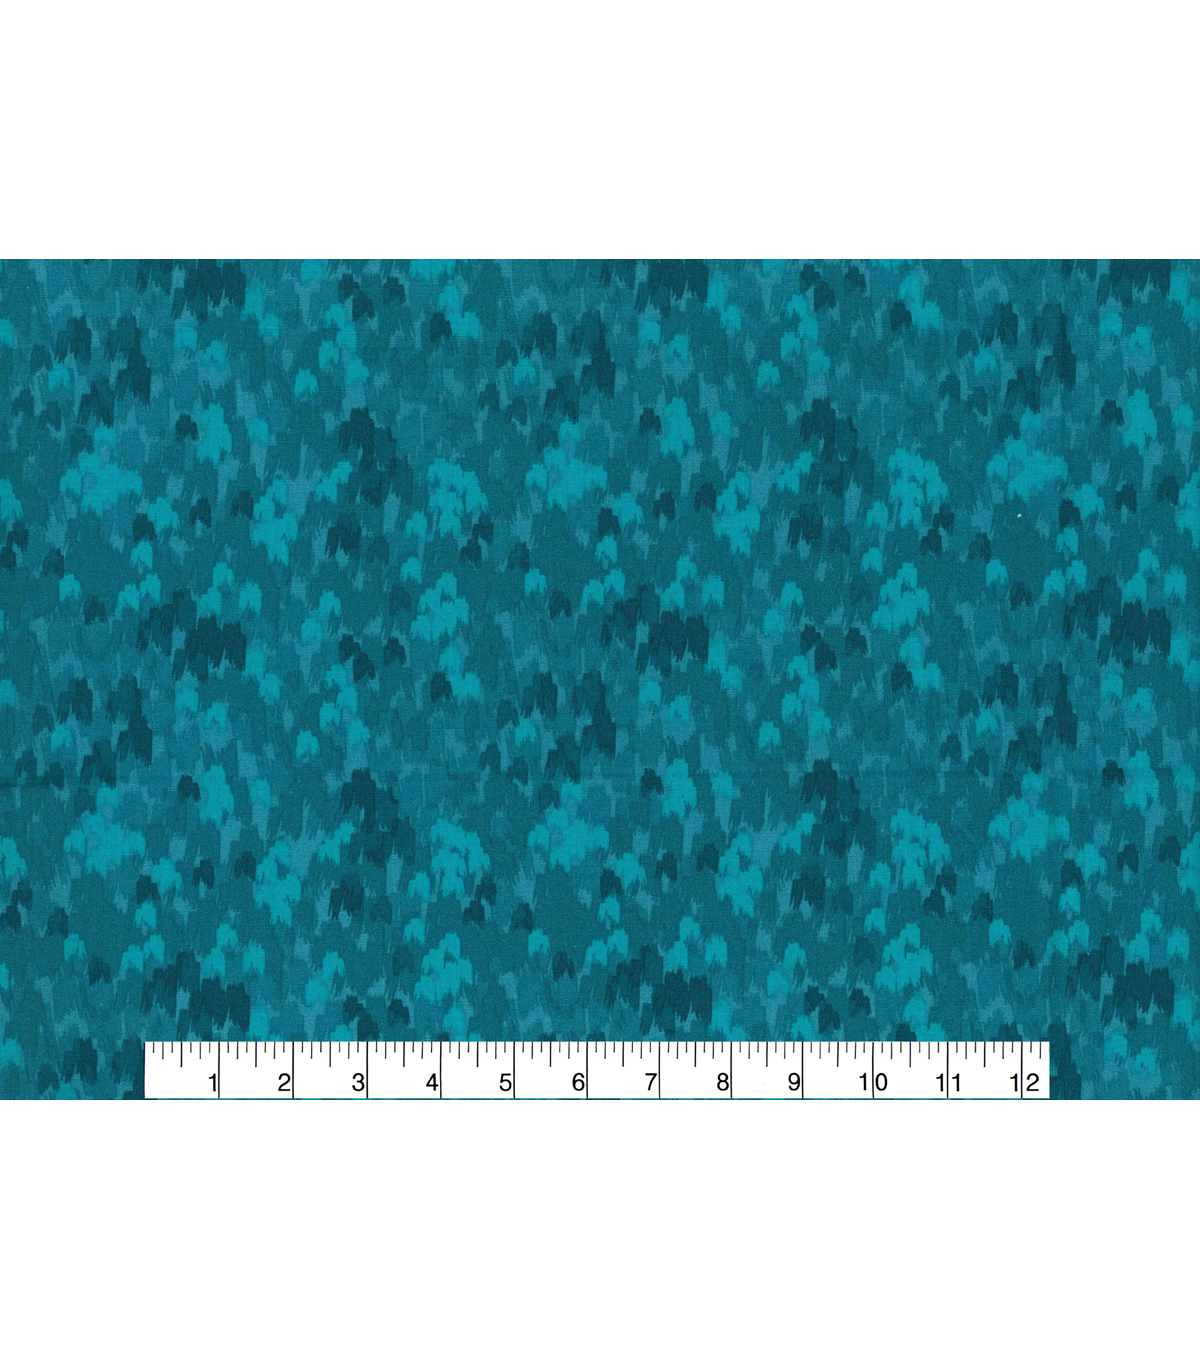 Keepsake Calico Cotton Fabric 43\u0022-Multi Teal Abstract Blender